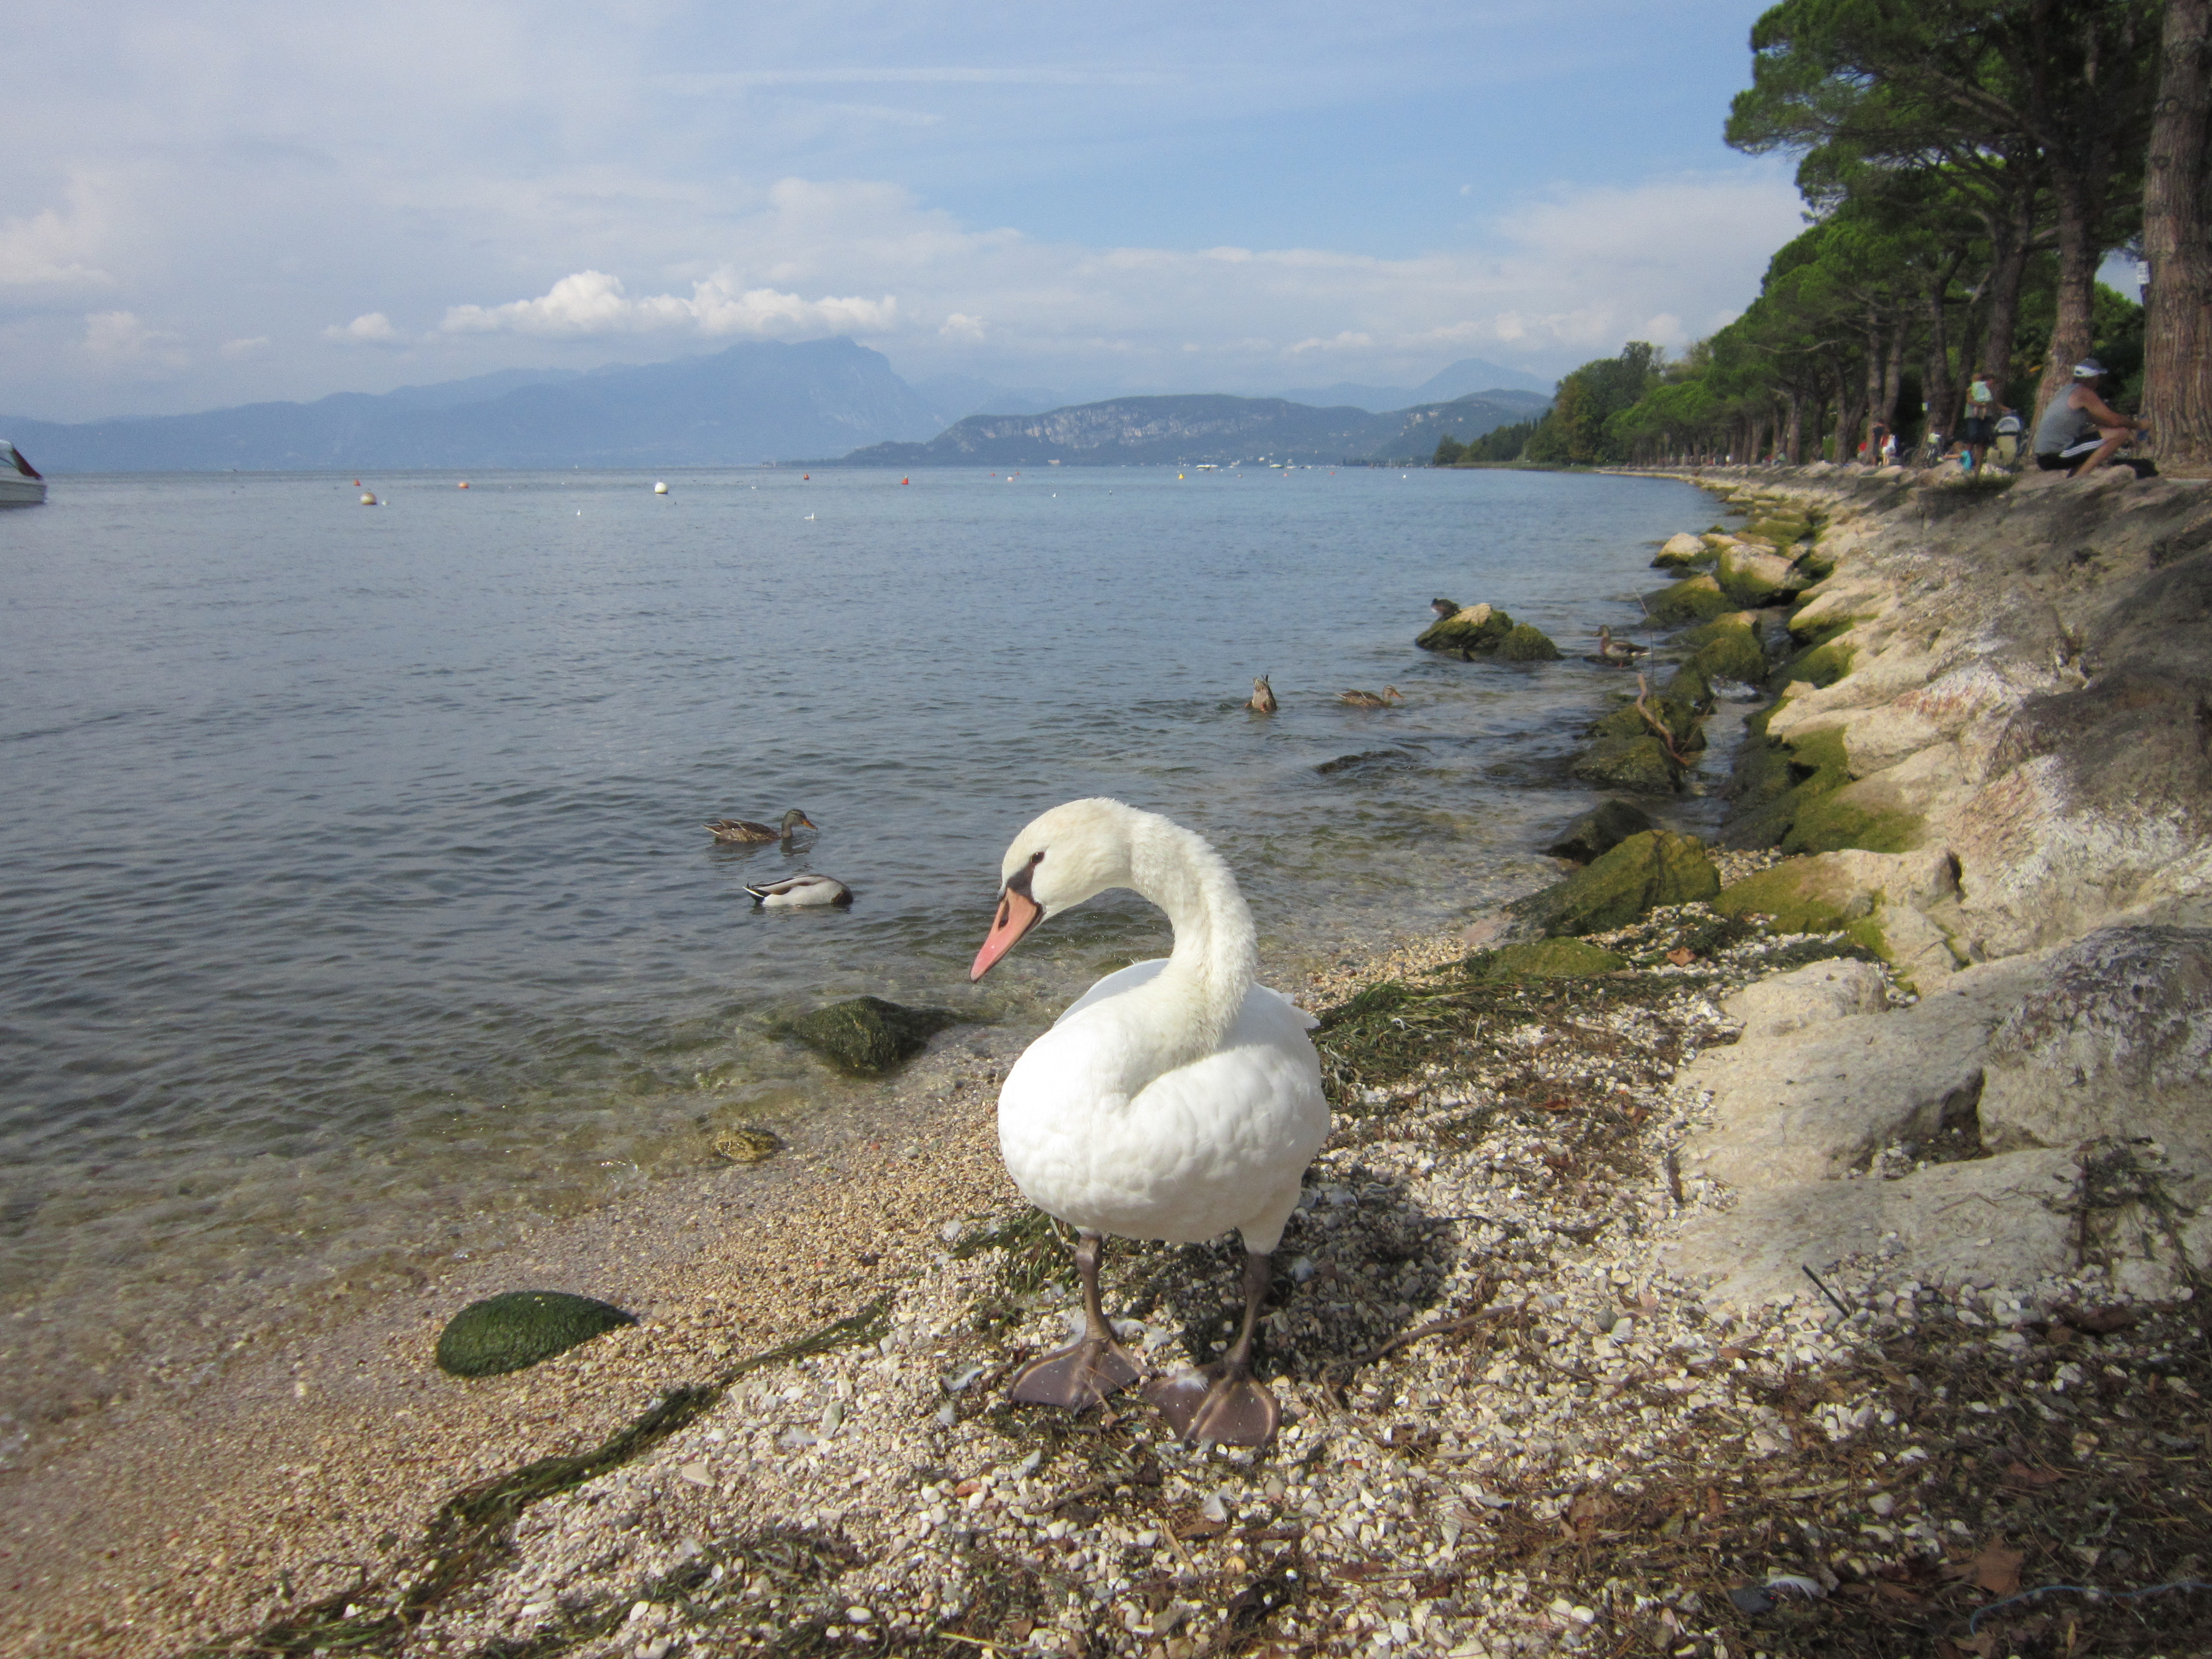 A swan on the shore of Lake Garda on a sunny day